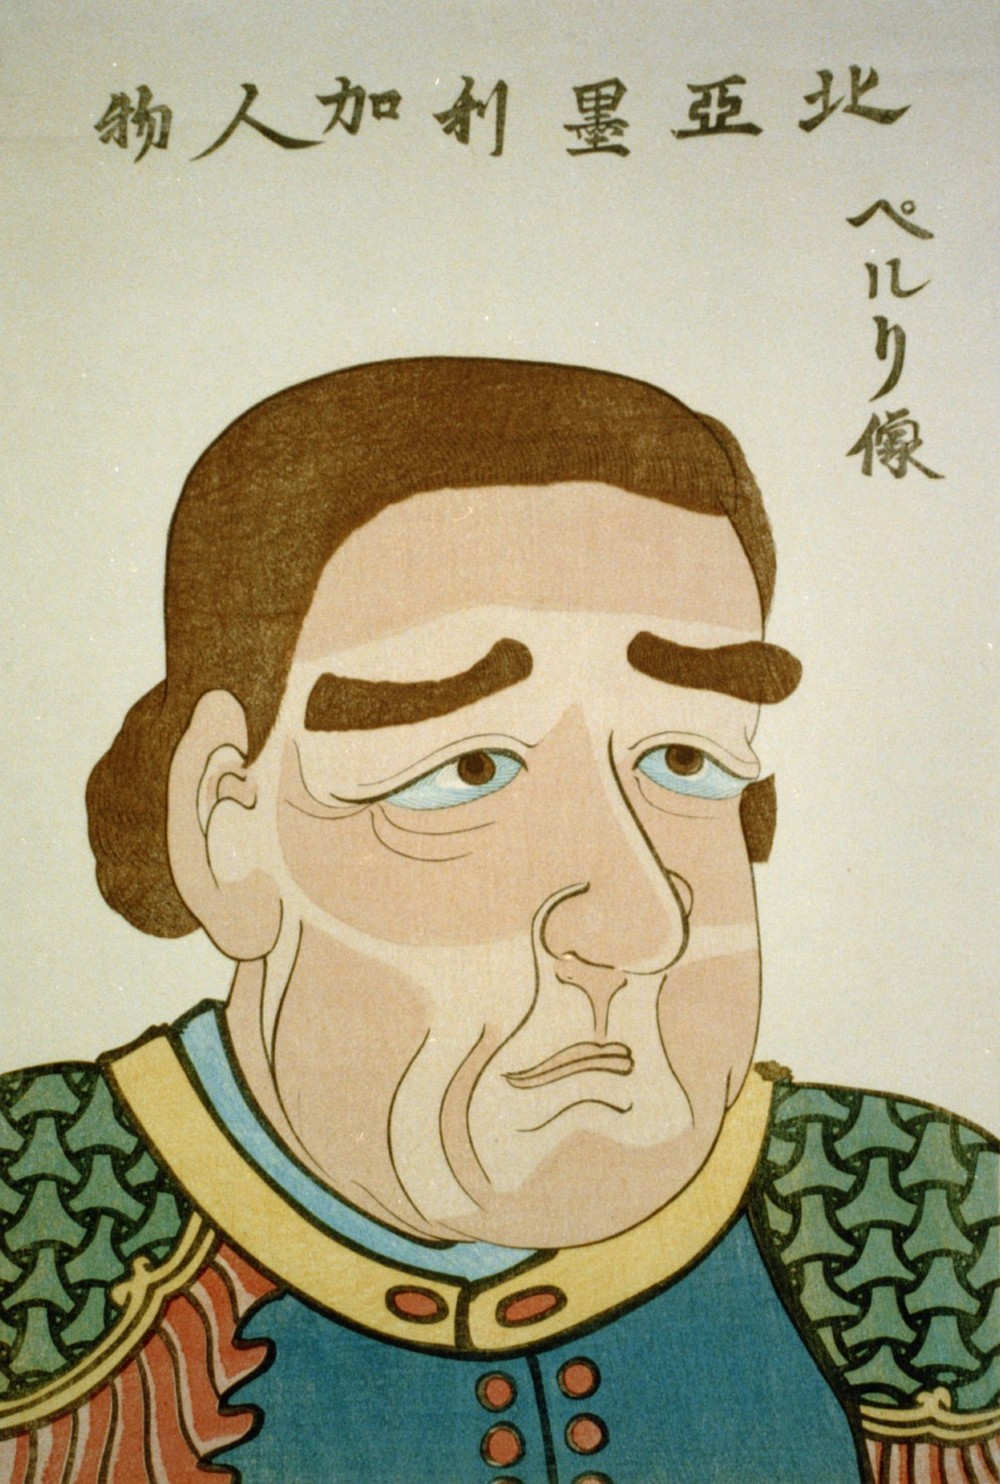 A Japanese woodblock portrait of Commodore Perry c. 1854 ... he wasn't necessarily Japan's favorite guy...